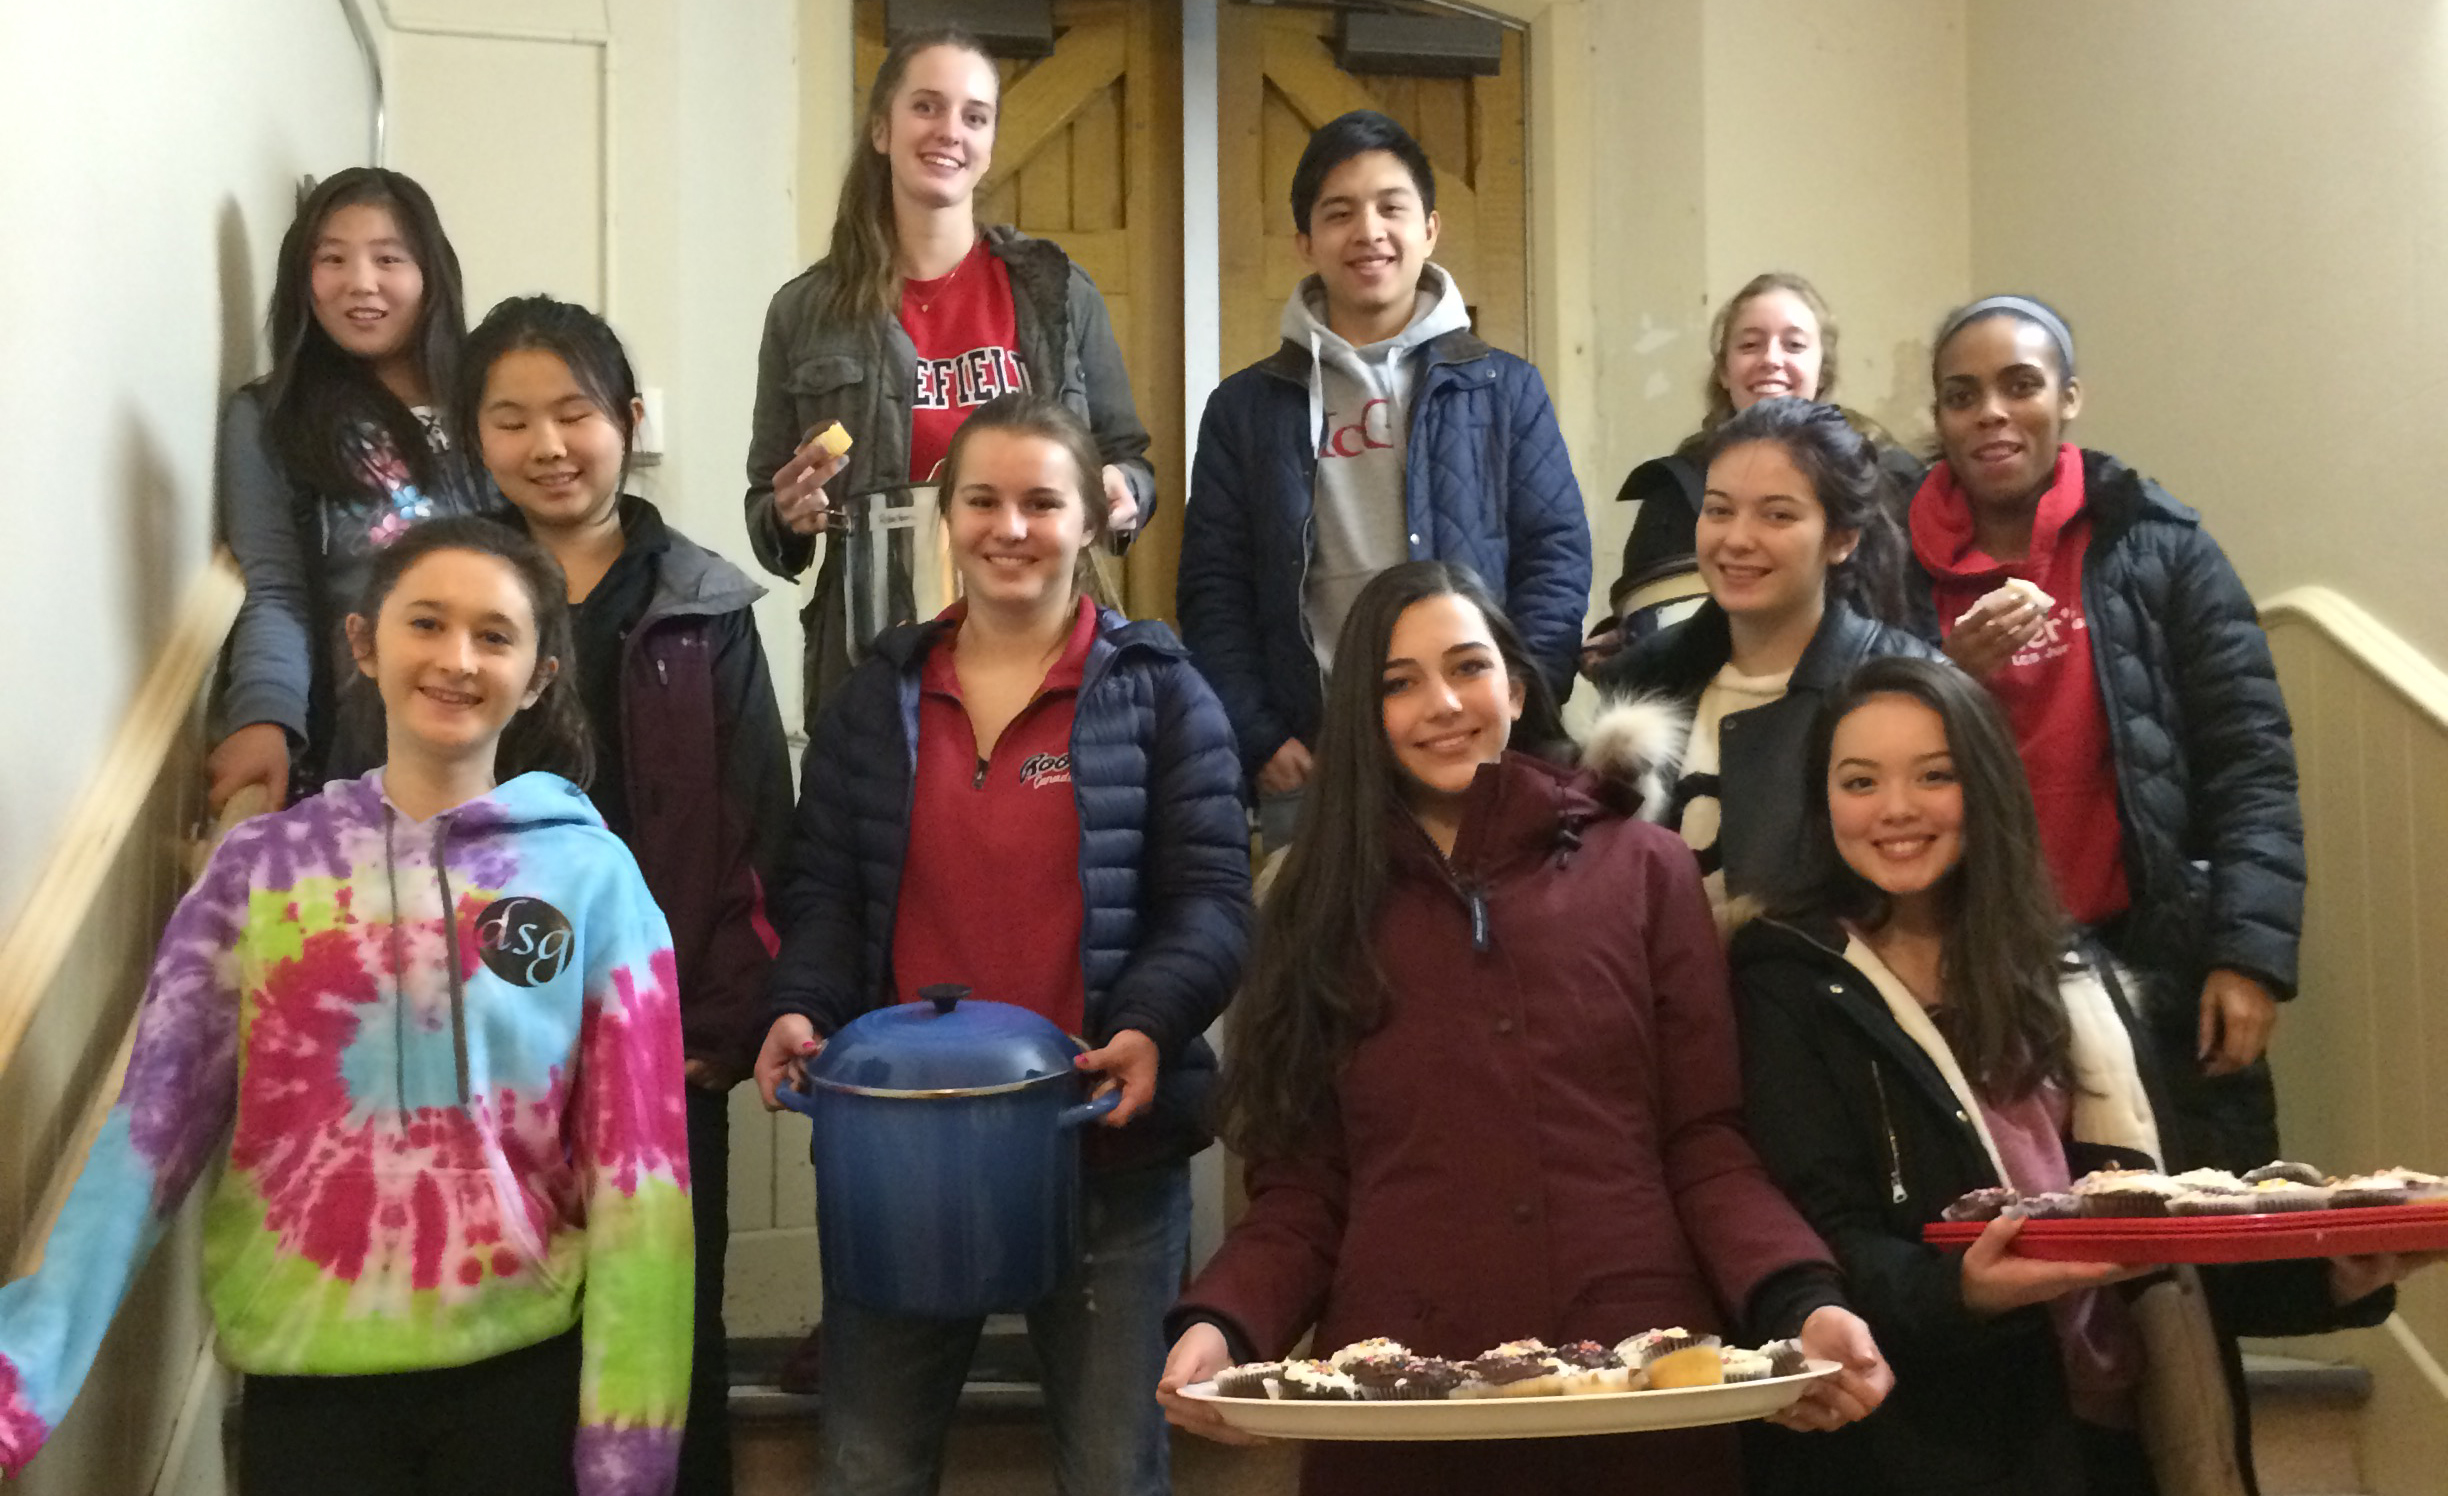 Exciting Volunteer Opportunities Your Child Can Access in Boarding School